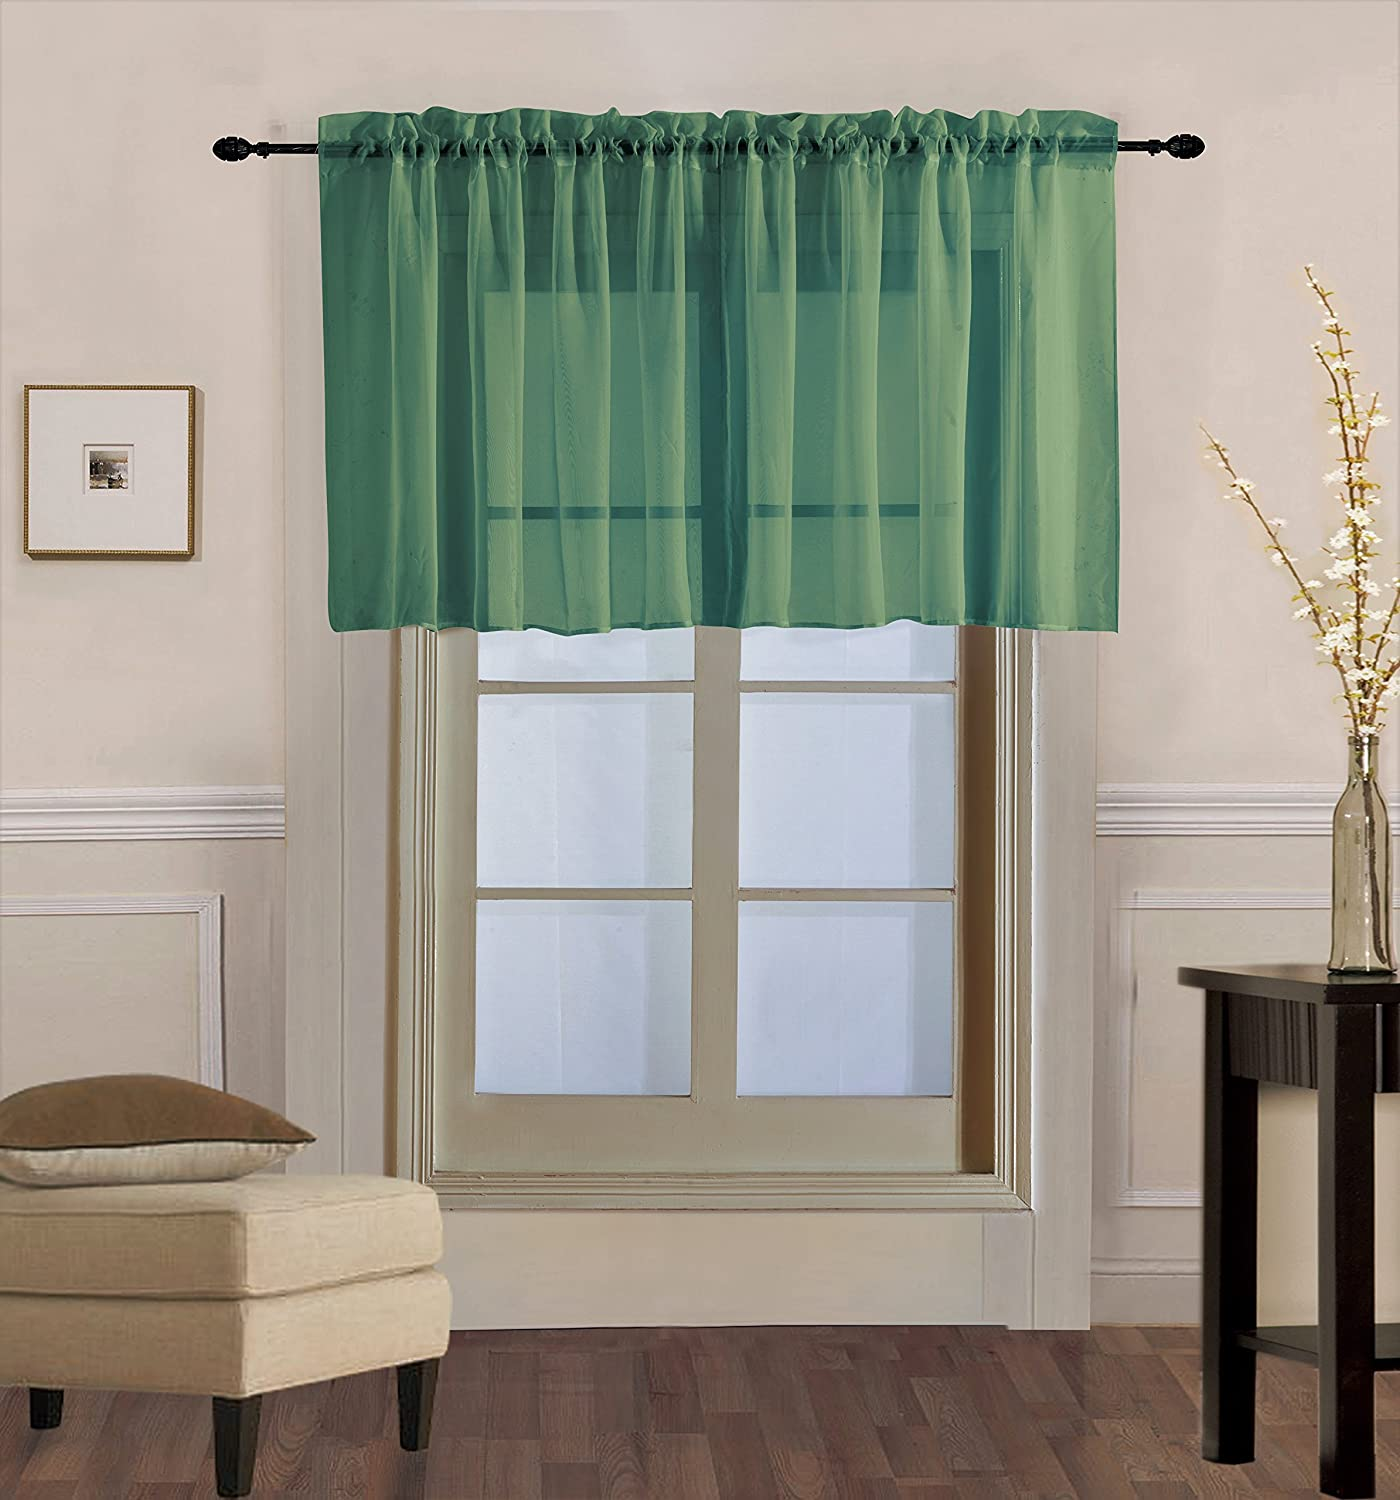 "GorgeousHomeLinen (V16) 1 Elegant Straight Sheer Rod Pocket Swag Waterfall Valance, 55"" X 18"" Inch (Hunter Green)"